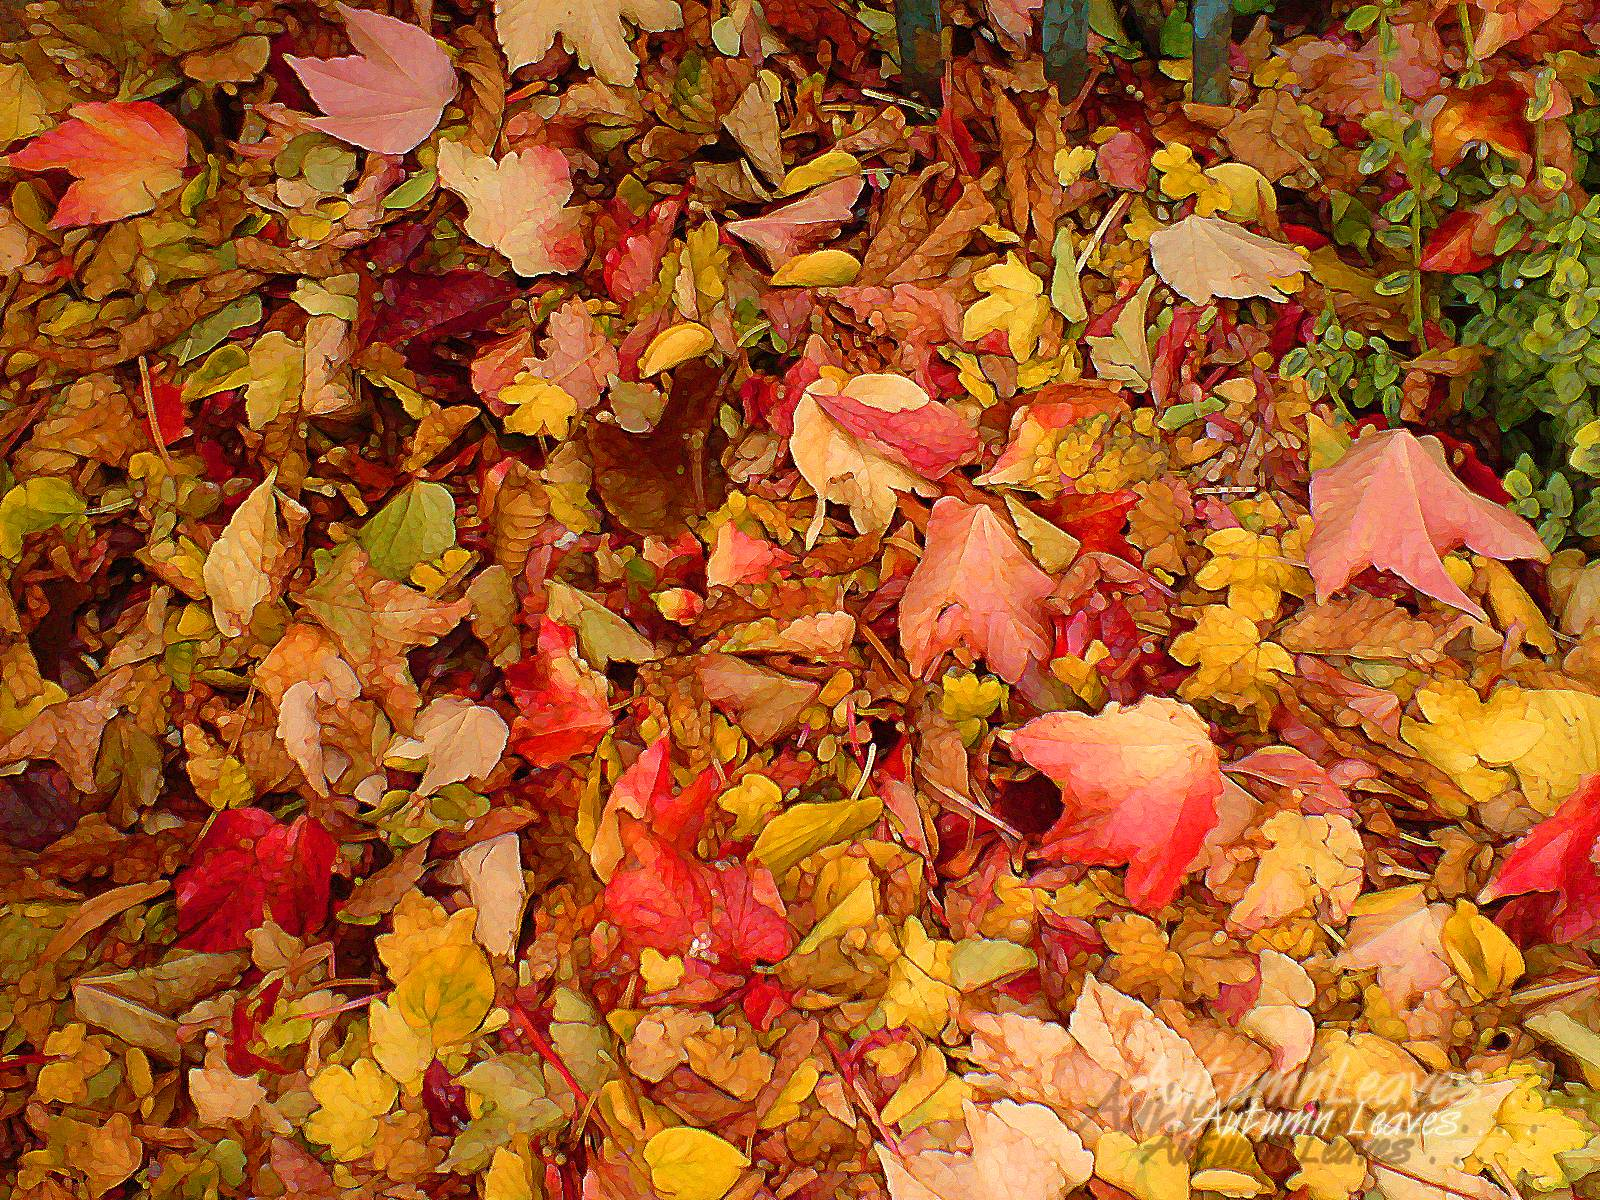 Hd Wallpaper Fall Leaf Change Fall Leaves Wallpapers Free Wallpaper Cave